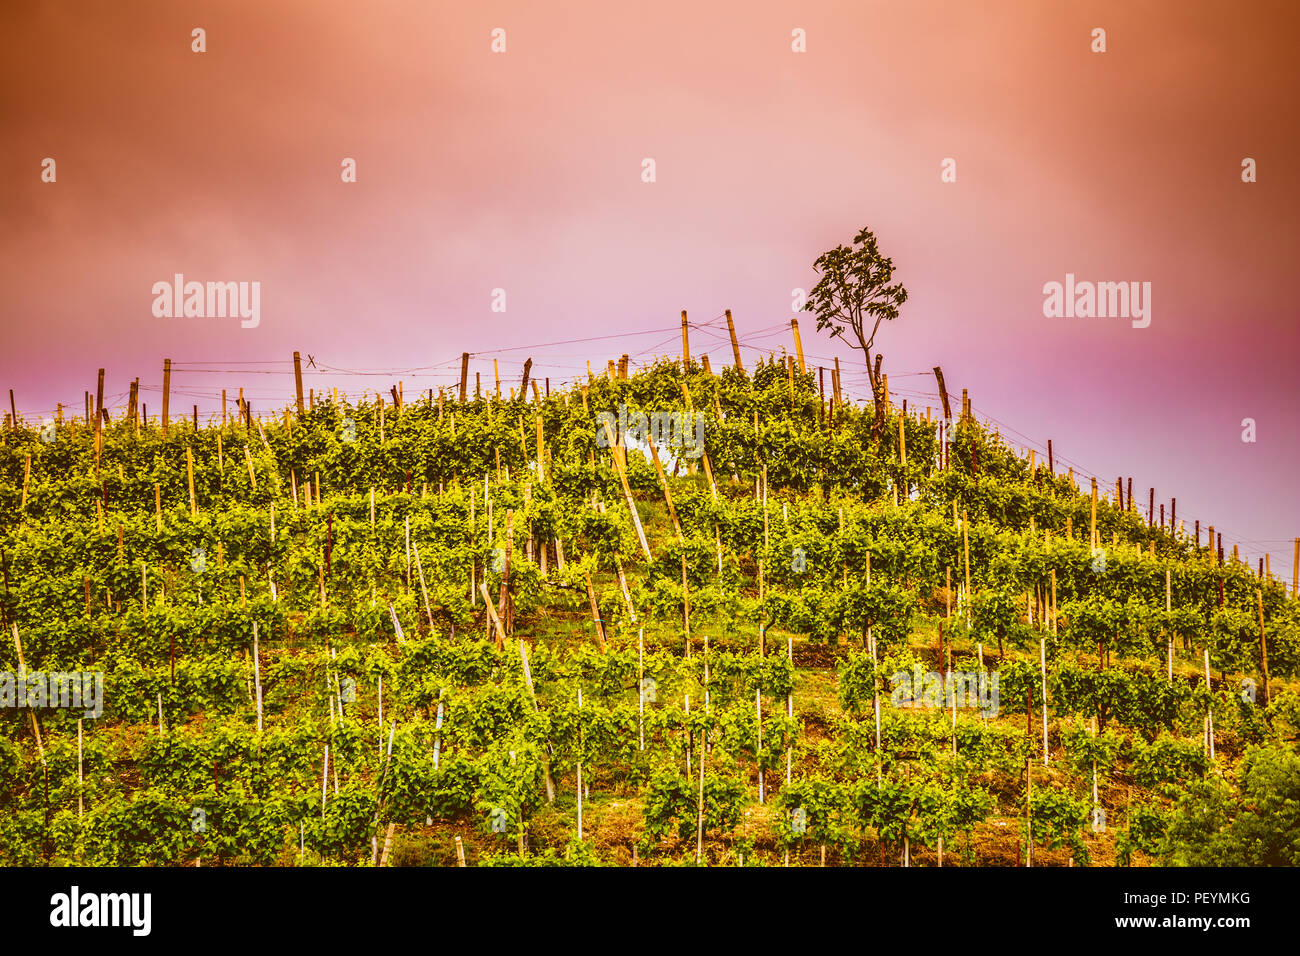 The picturesque landscape full of vineyards around the town of Valdobbiadene vine region, Italy Stock Photo